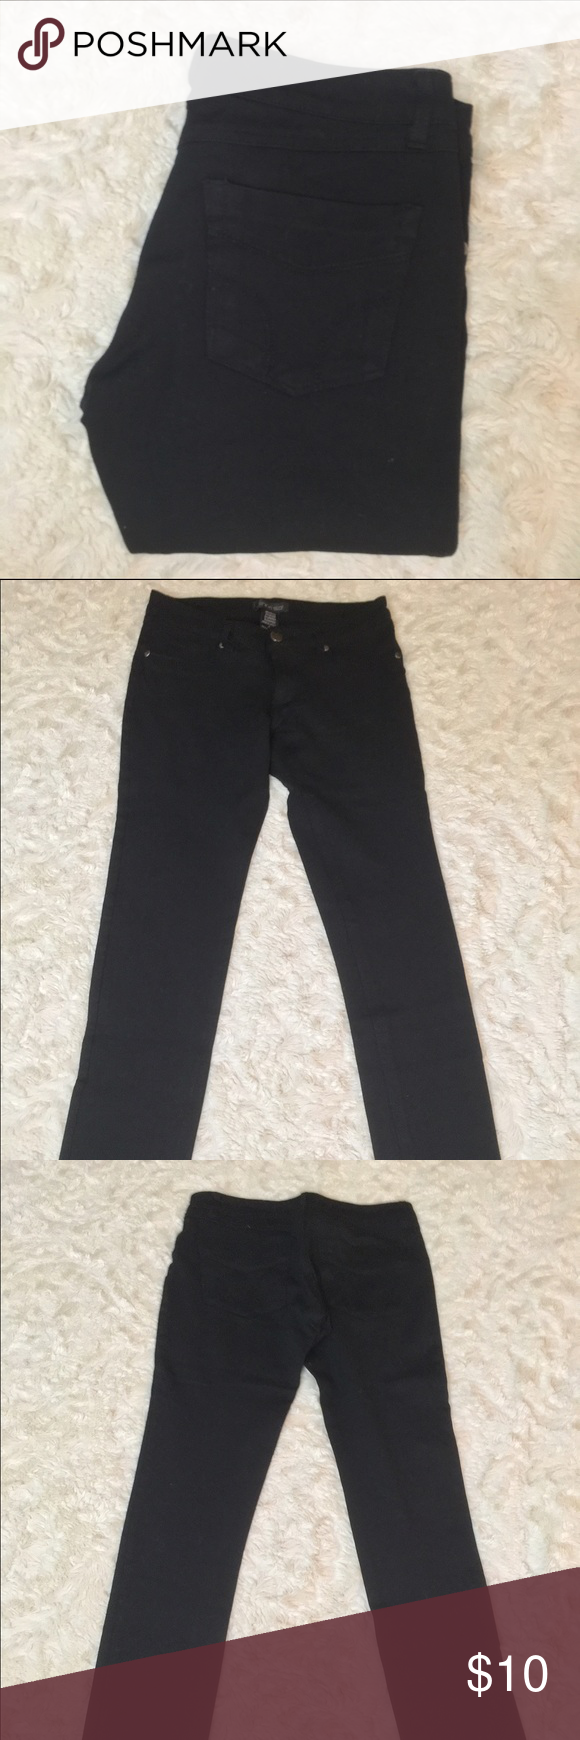 04f3569c8e6 Shine Star Black Jeggings Small Shine Star black jegging's size small, rise  6.5